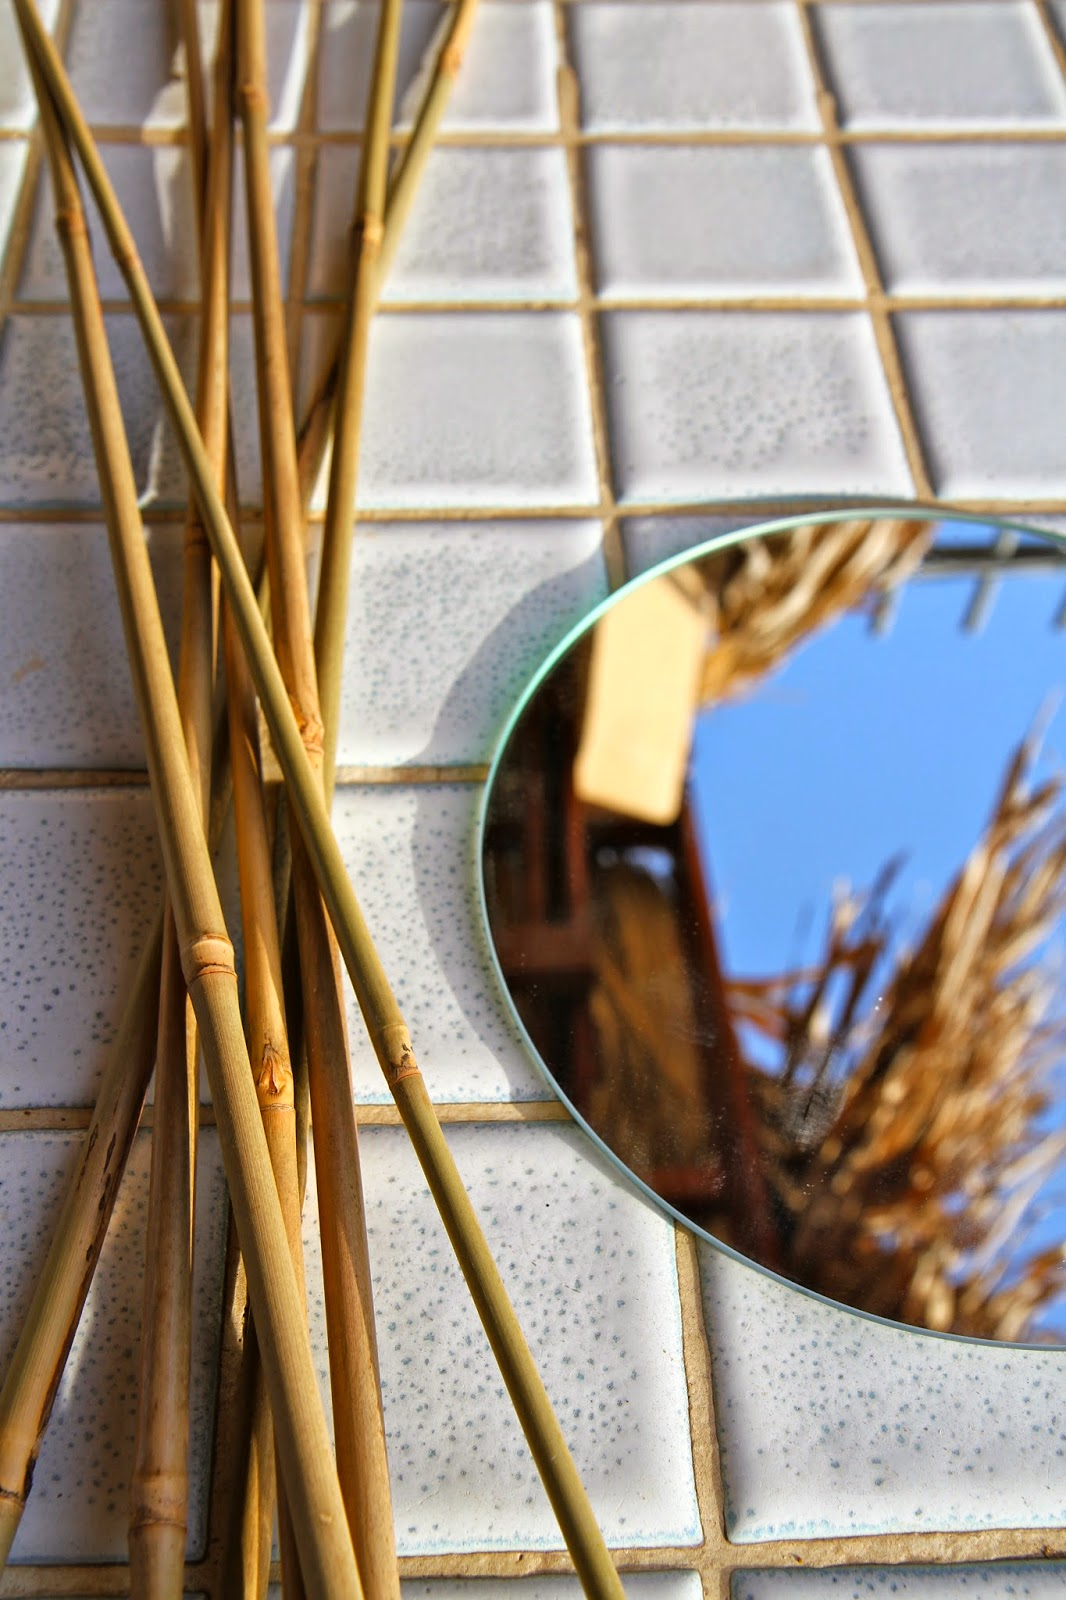 Inspiring Breakfast At Faymes Diy Bamboo Sunburst Mirror With Exciting Small Round Mirror  Decorative Bamboo Sticks Find Them In A Home And  Garden Store  Hot Glue Gun  Measuring Tape  Gardening Scissors With Delectable Gardens Of Wales Also Garden Resort Tenerife In Addition Concrete Blocks For Garden Walls And Comedy Store Covent Garden As Well As Quote Garden Additionally Low Maintenance Rock Garden Ideas From Breakfastatfaymesblogspotcom With   Exciting Breakfast At Faymes Diy Bamboo Sunburst Mirror With Delectable Small Round Mirror  Decorative Bamboo Sticks Find Them In A Home And  Garden Store  Hot Glue Gun  Measuring Tape  Gardening Scissors And Inspiring Gardens Of Wales Also Garden Resort Tenerife In Addition Concrete Blocks For Garden Walls From Breakfastatfaymesblogspotcom